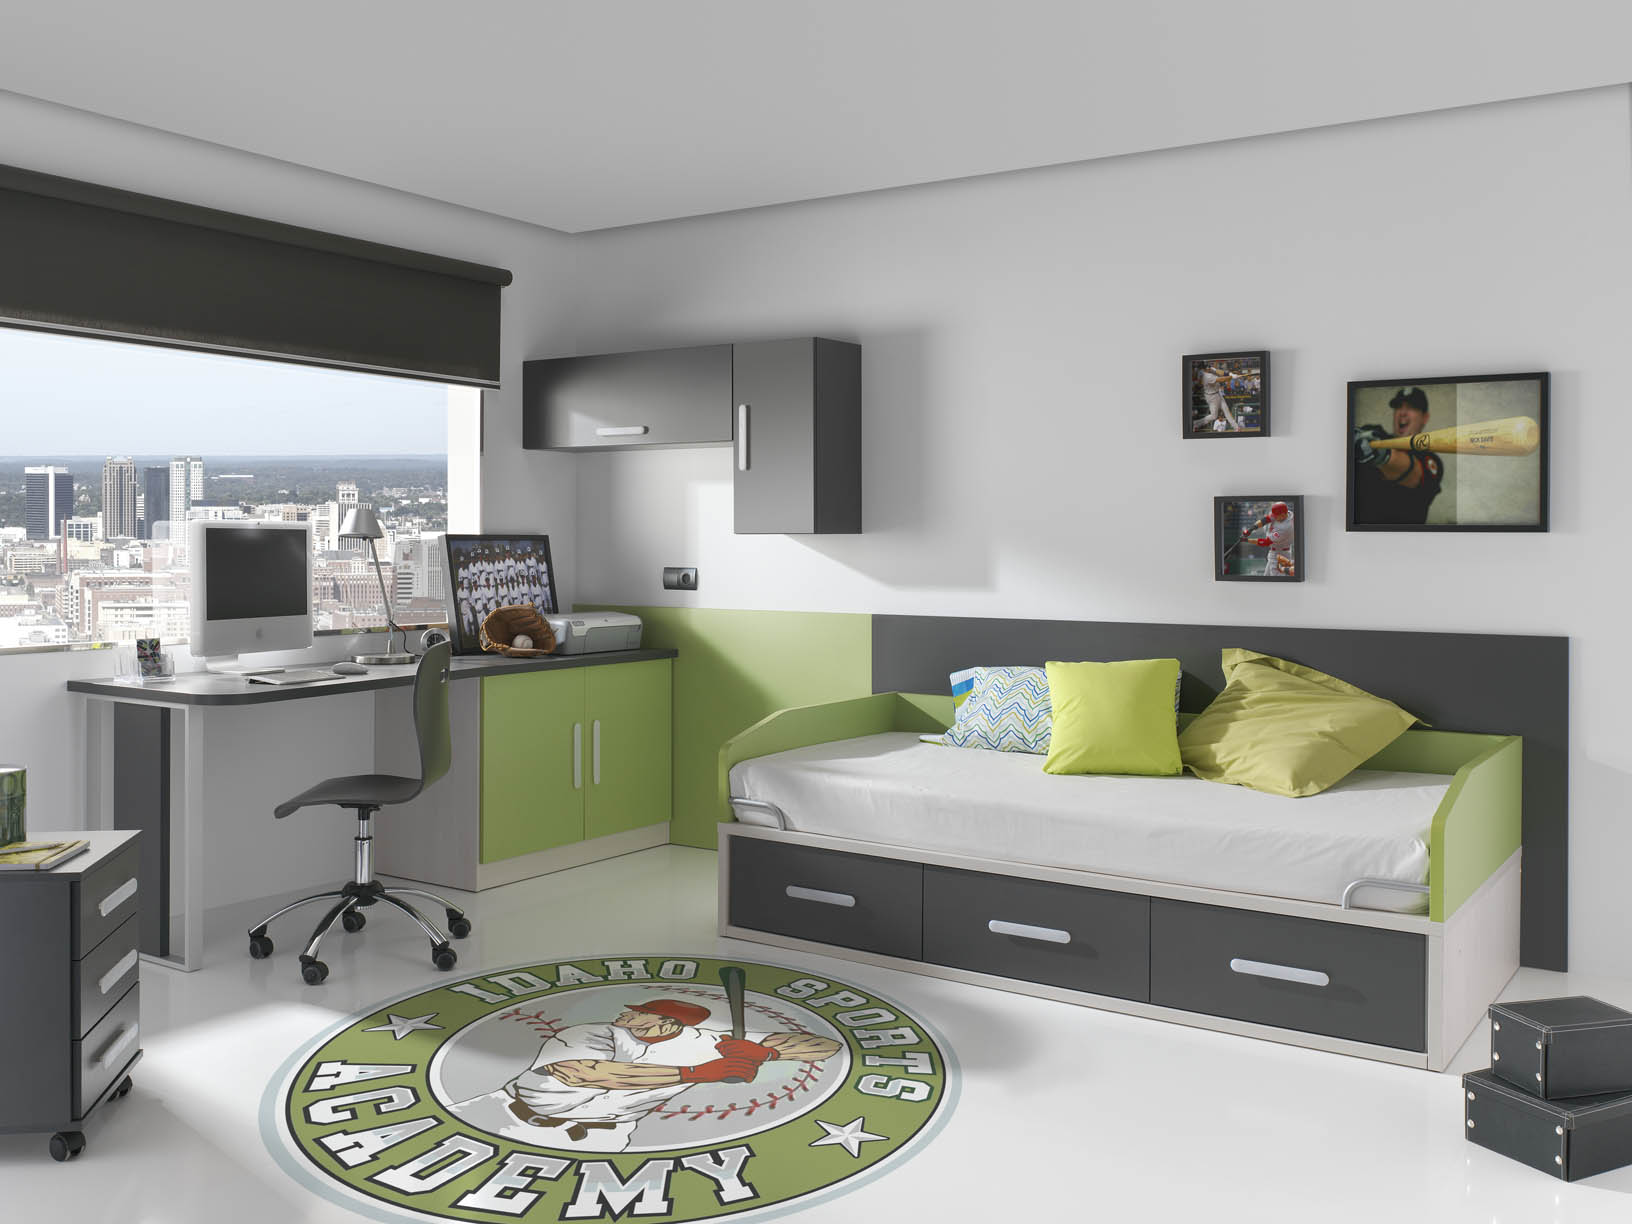 Dormitorios juveniles en color verde muebles orts blog for Decoracion dormitorio juvenil